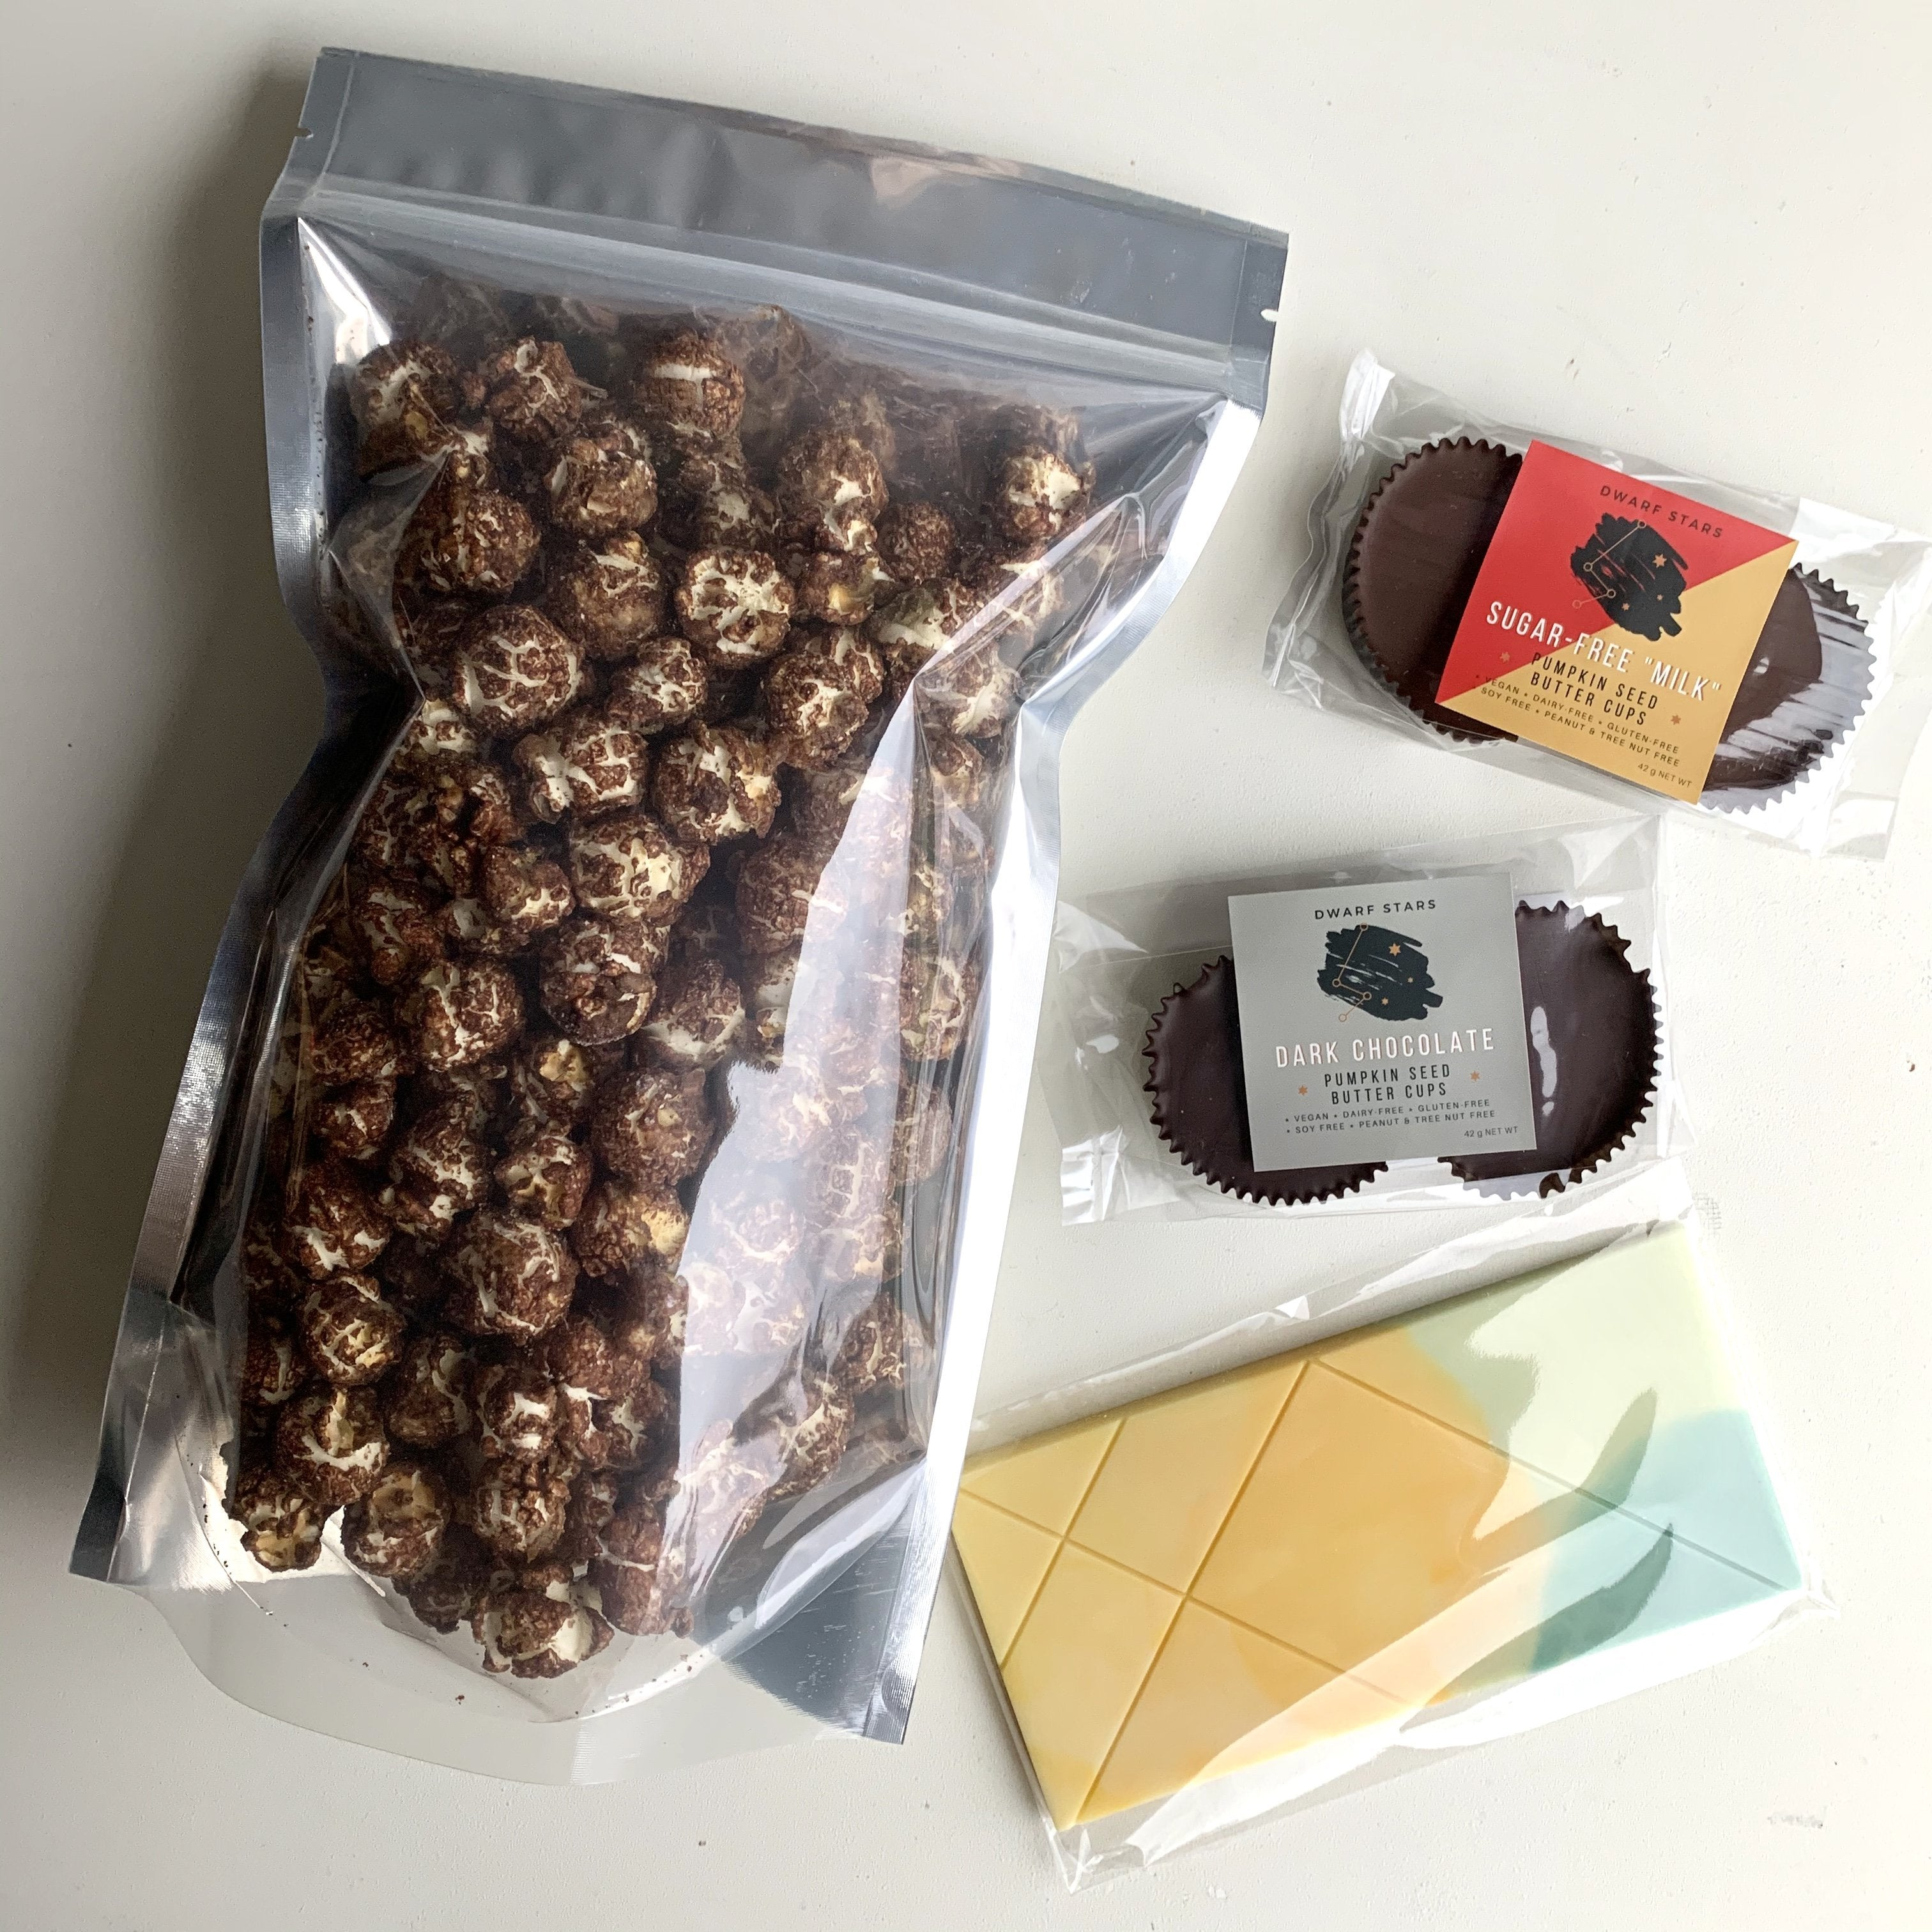 Vegan Dark Chocolate Popcorn, Vegan Chocolate Pumpkin Seed Butter Cups, Vegan White Chocolate Bar